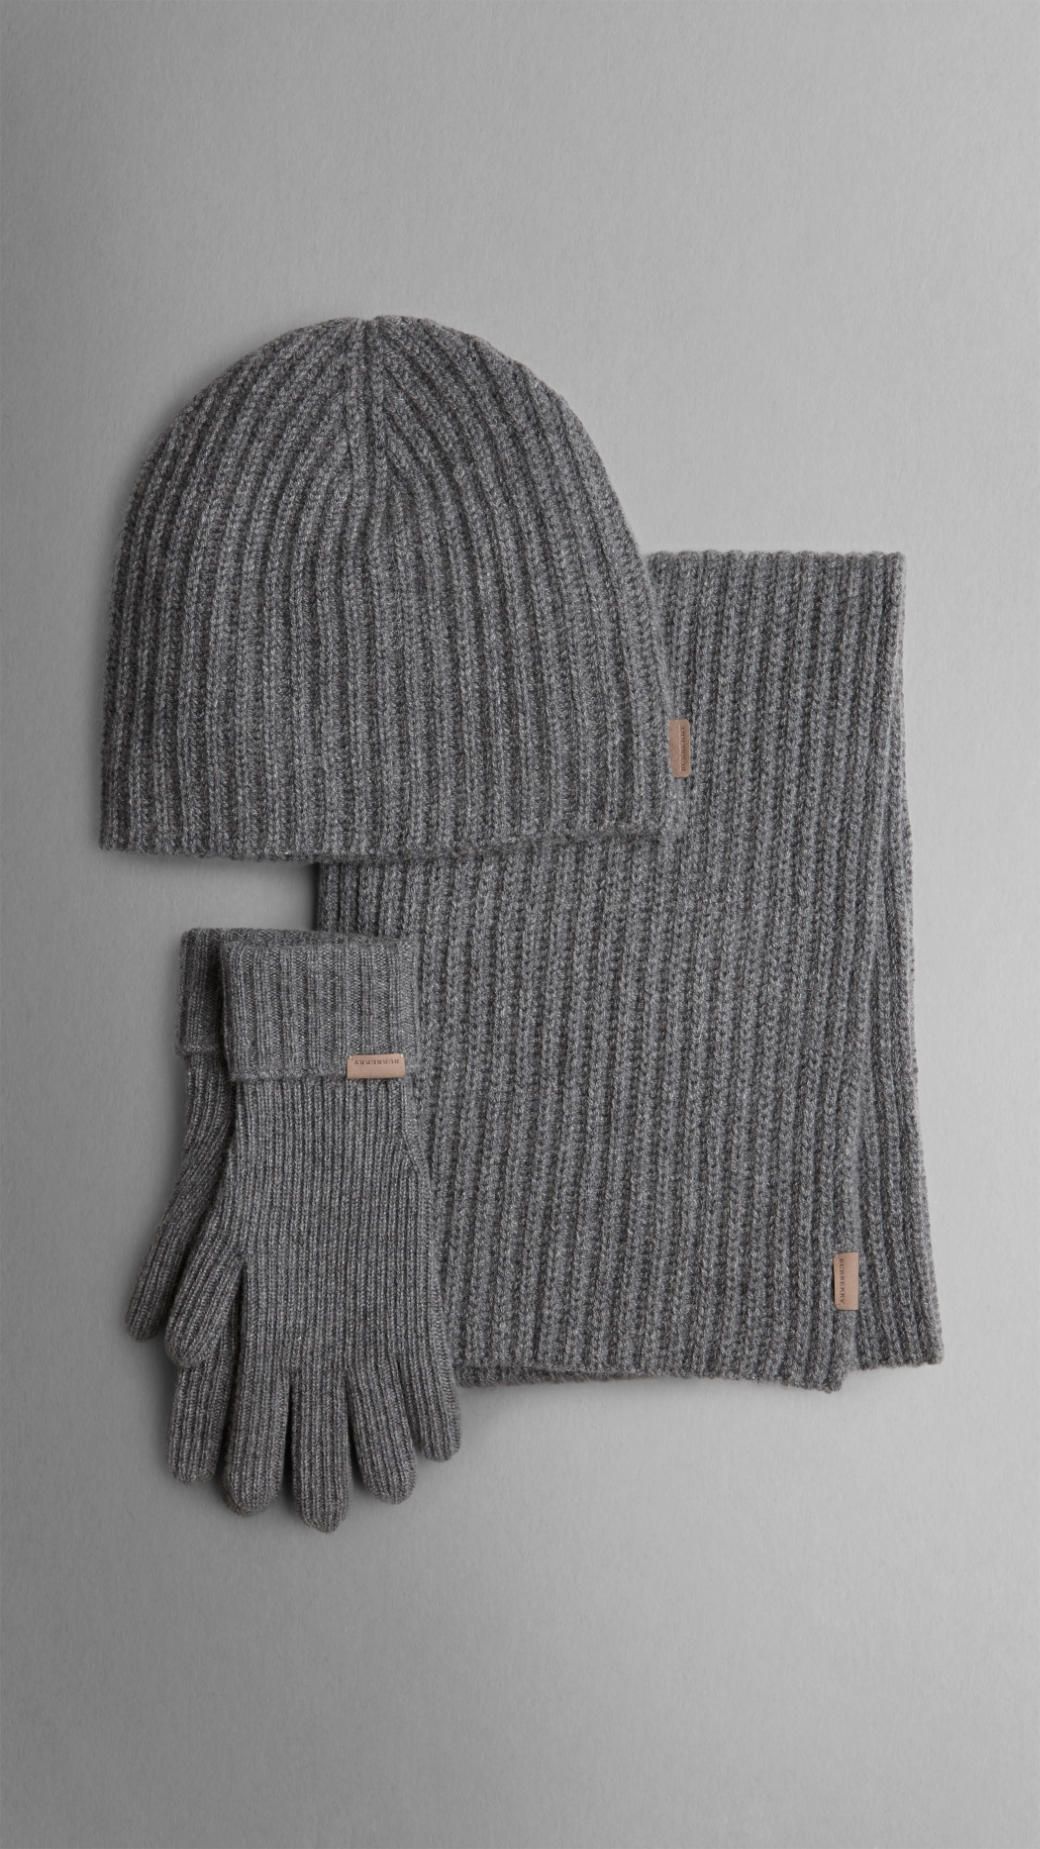 Lyst - Burberry Cashmere Ribbed Knit Hat Gloves and Scarf Set in ... 0eca52eada2